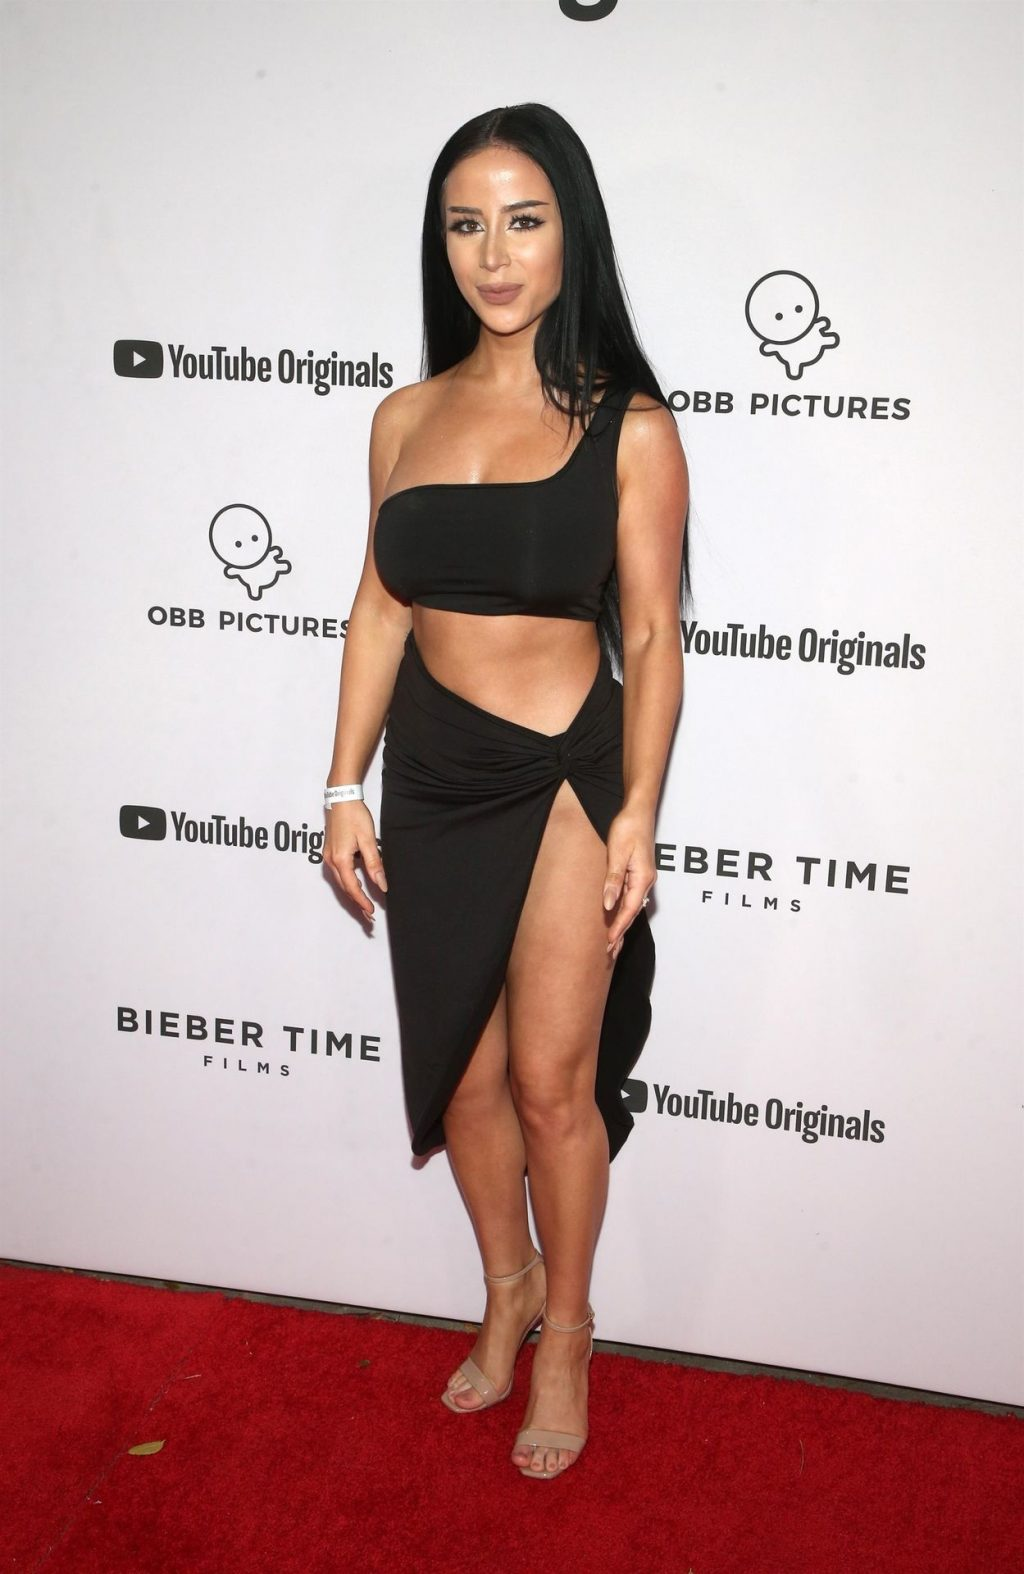 Pantyless Amber Scholl Poses at the Justin Bieber: Seasons Premiere (9 Photos)